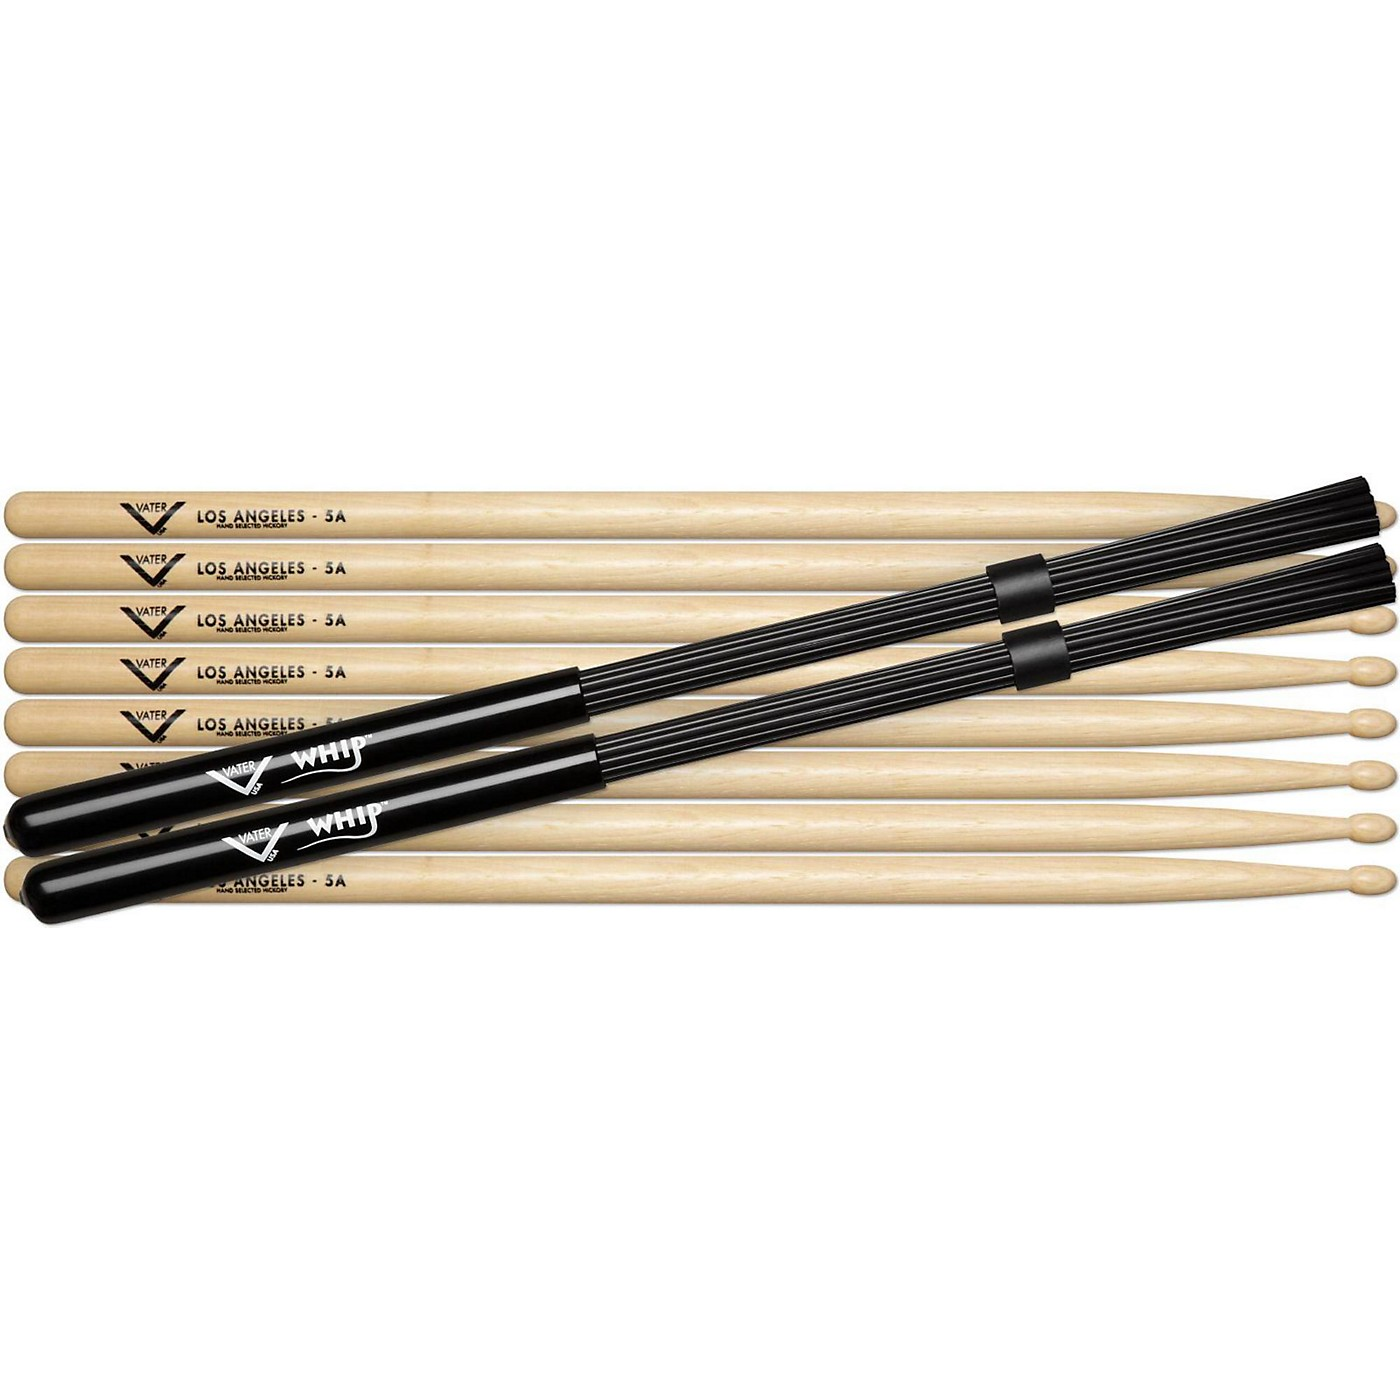 Vater Buy 4 Pairs 5A Wood Get Free Pair Whips thumbnail